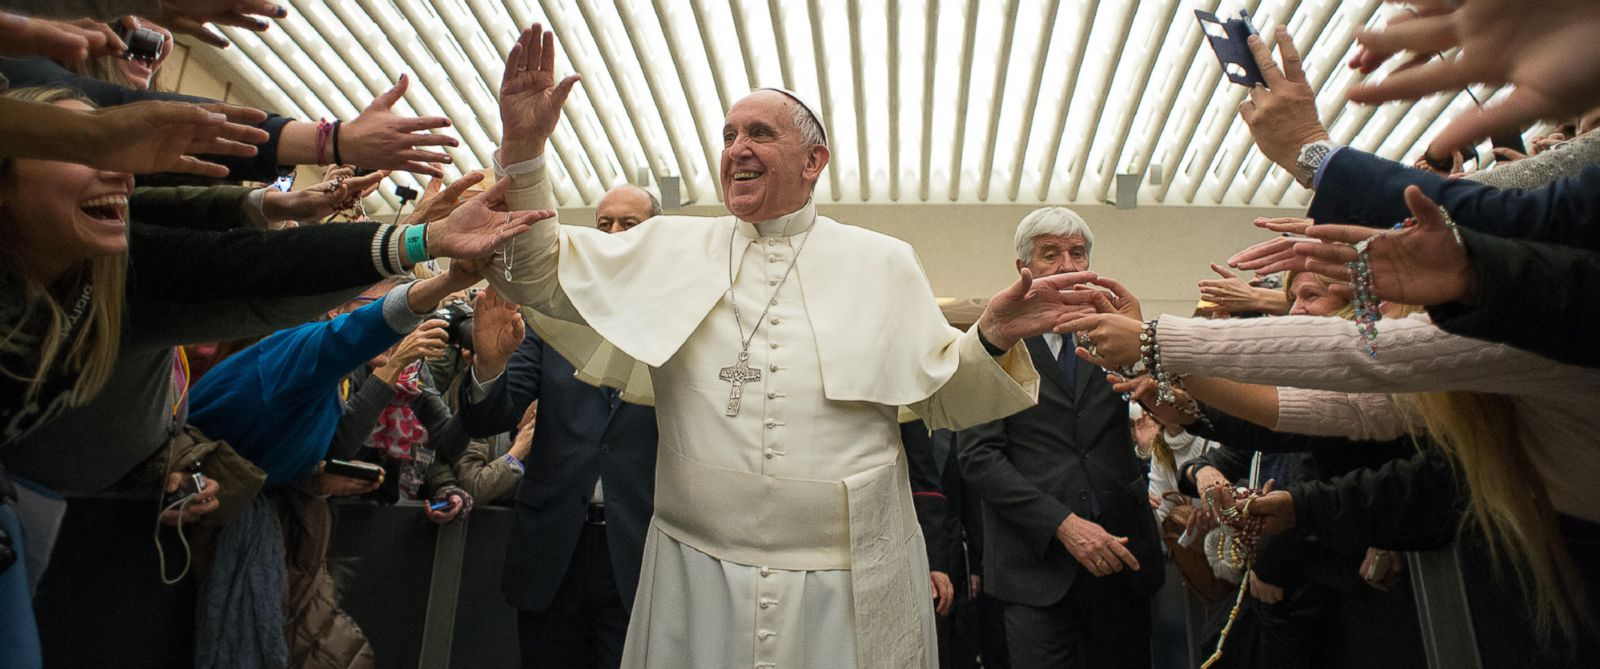 PHOTO: Pope Francis is cheered by fans upon his arrival for the weekly general audience in the Pope Paul VI Hall, at the Vatican on Feb. 4, 2015.